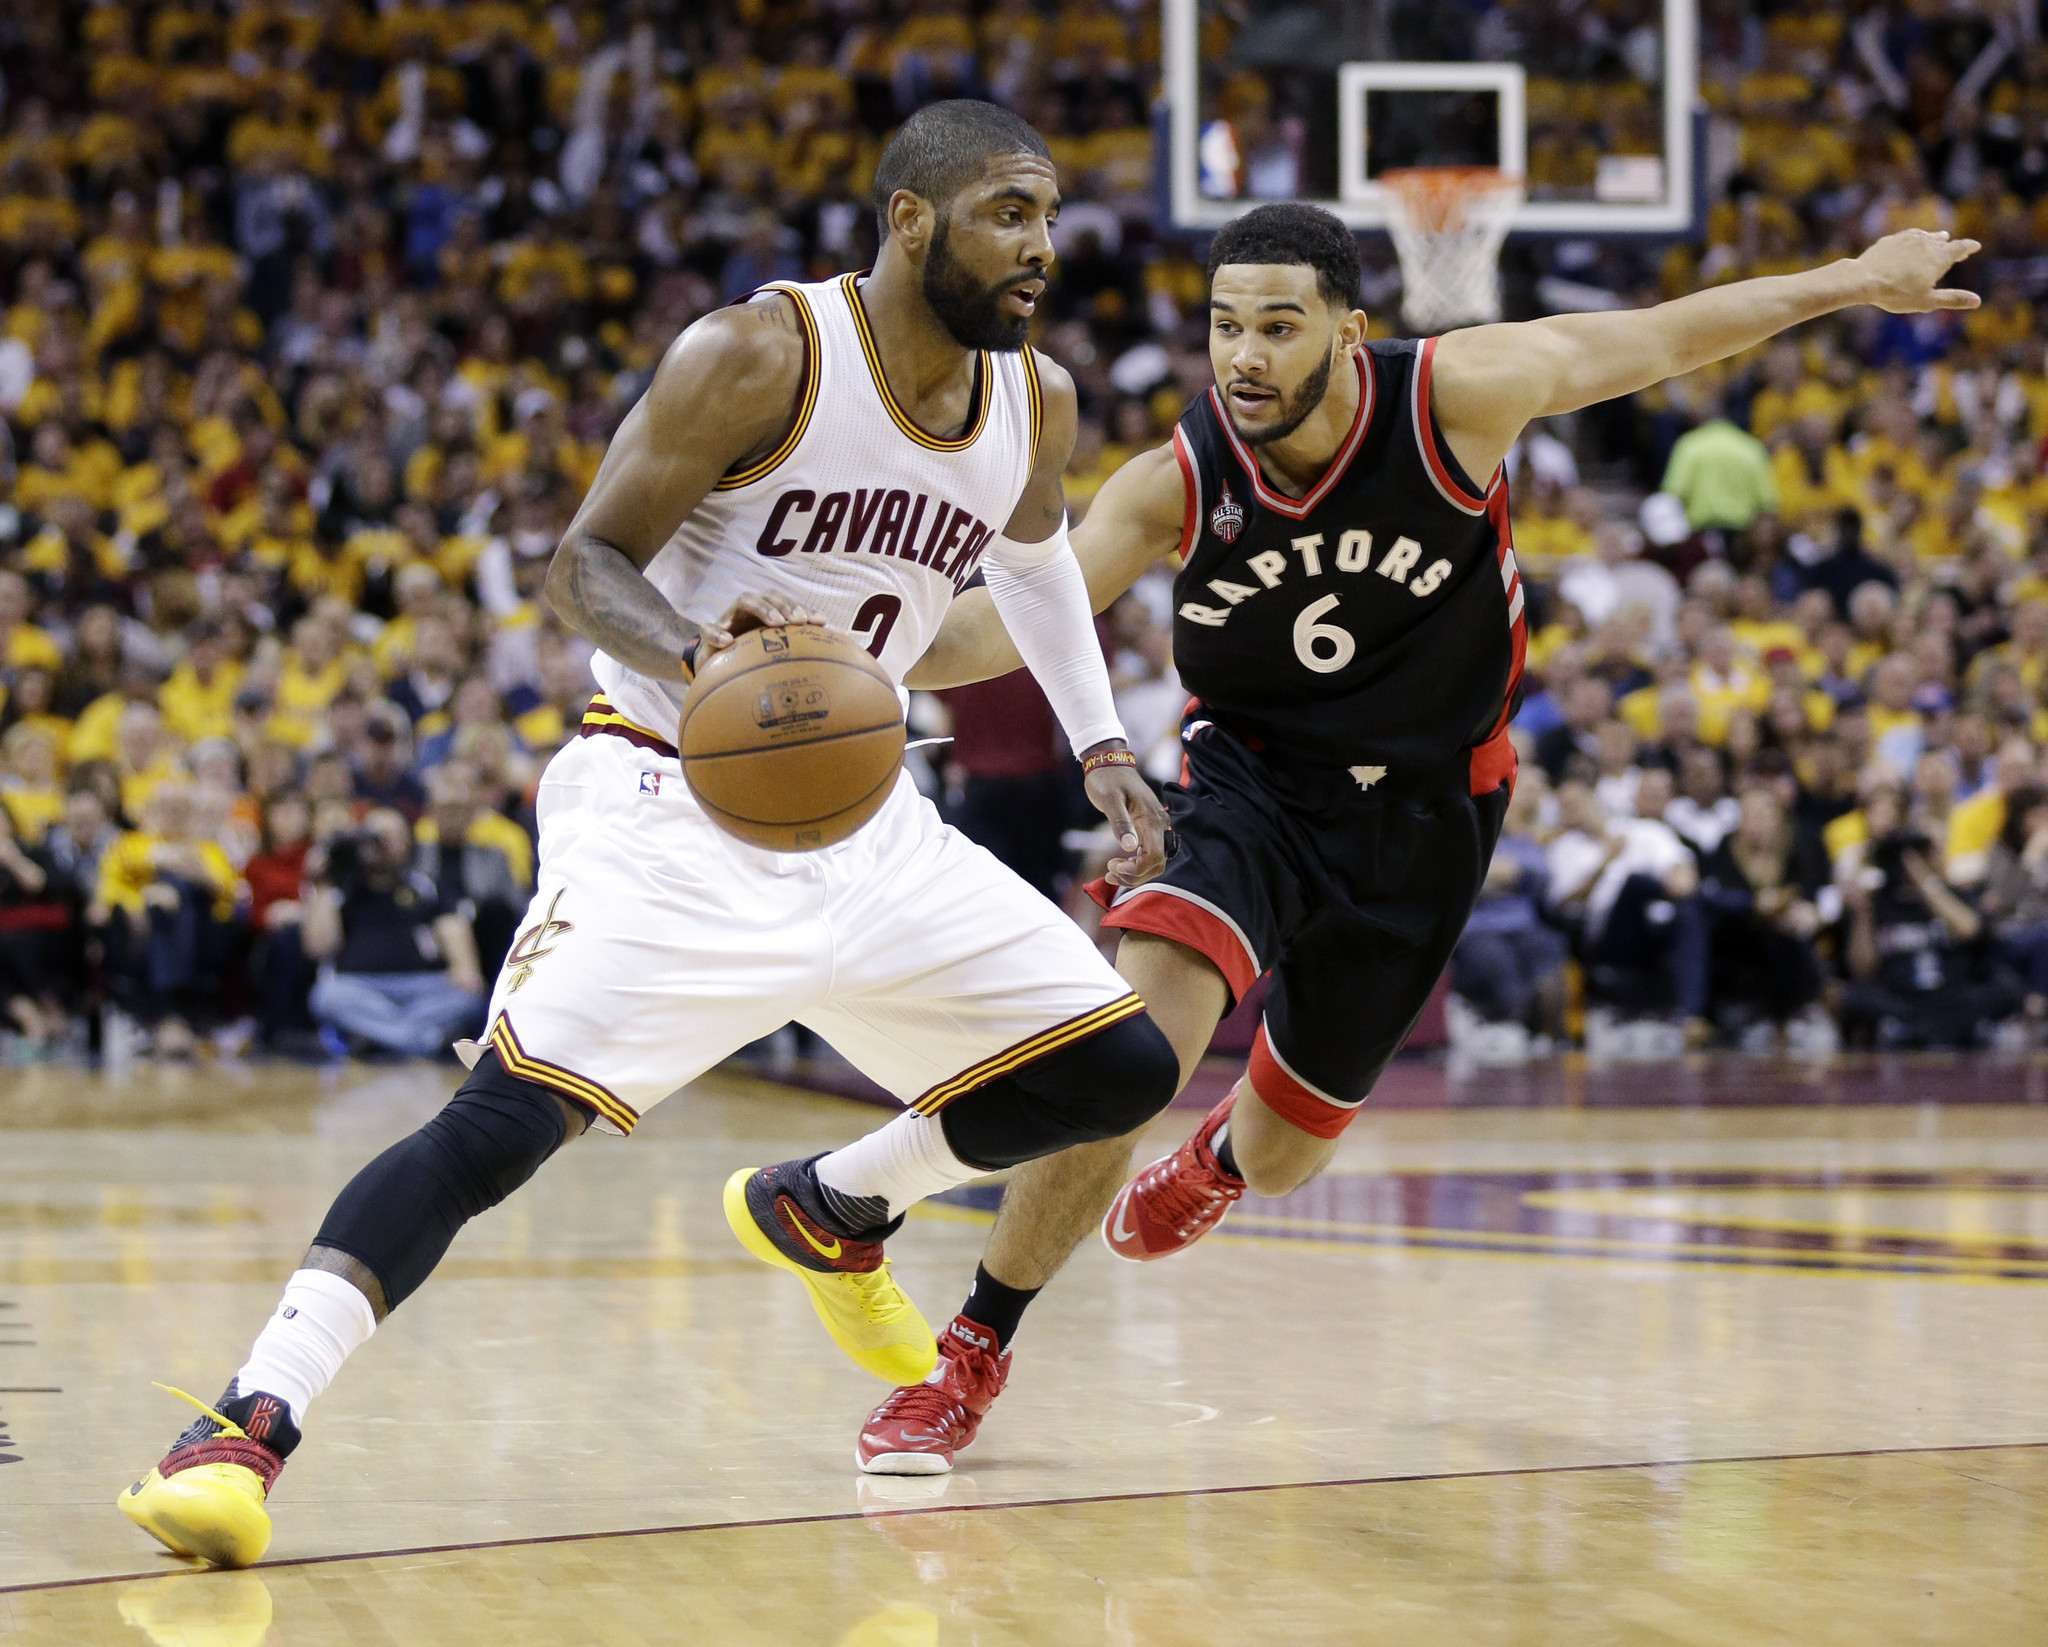 Ct-nba-cavaliers-kyrie-irving-spt-20160518